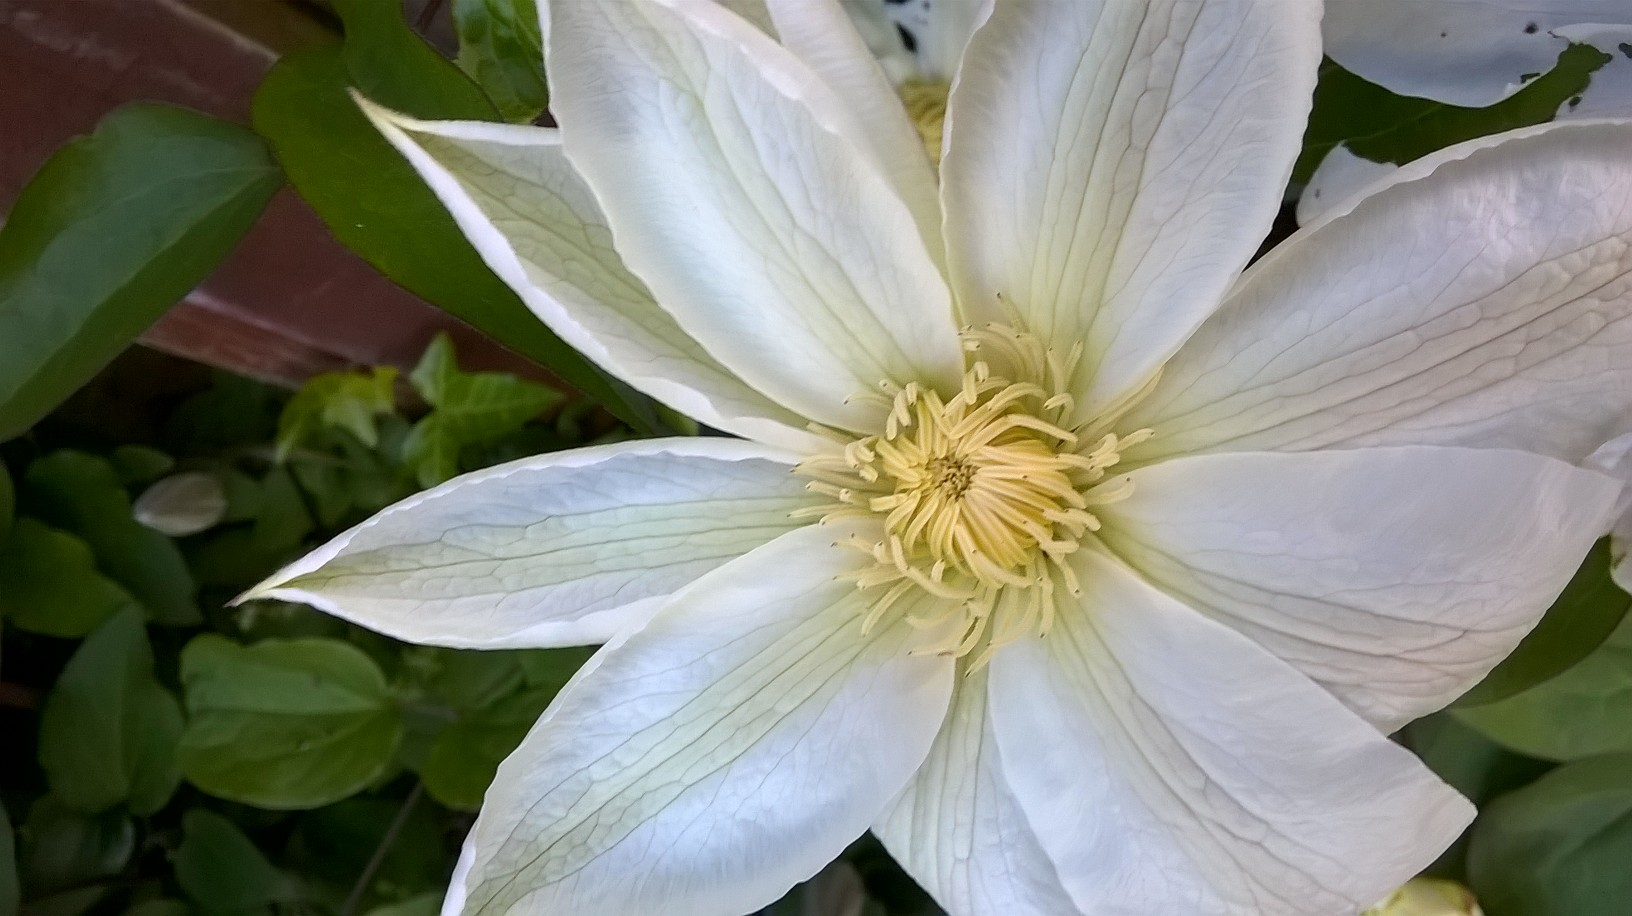 How To GrowA Clematis. white clematis flower. How to grow clematis